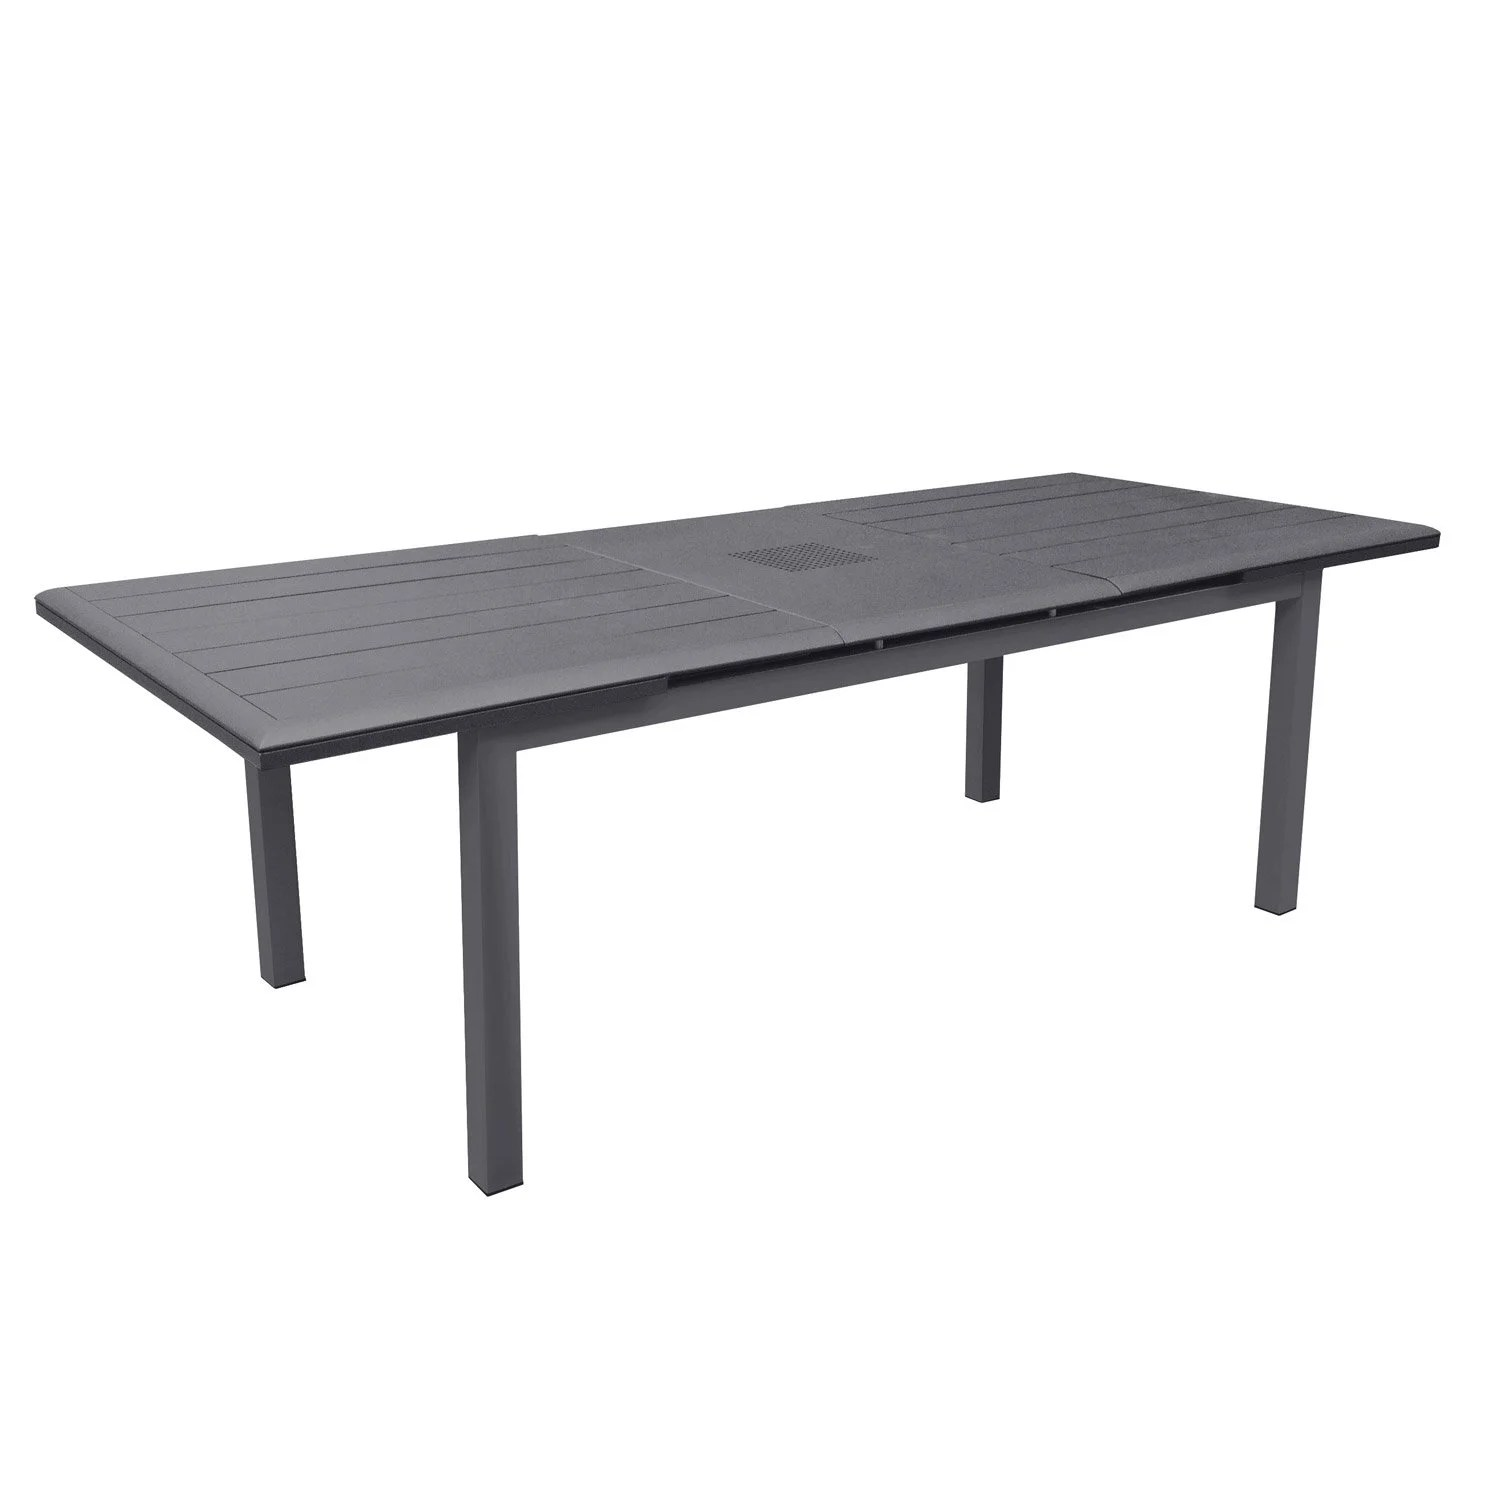 Leroy Merlin Table De Jardin Table De Jardin Louisiane Rectangulaire Gris 6 8 Personnes